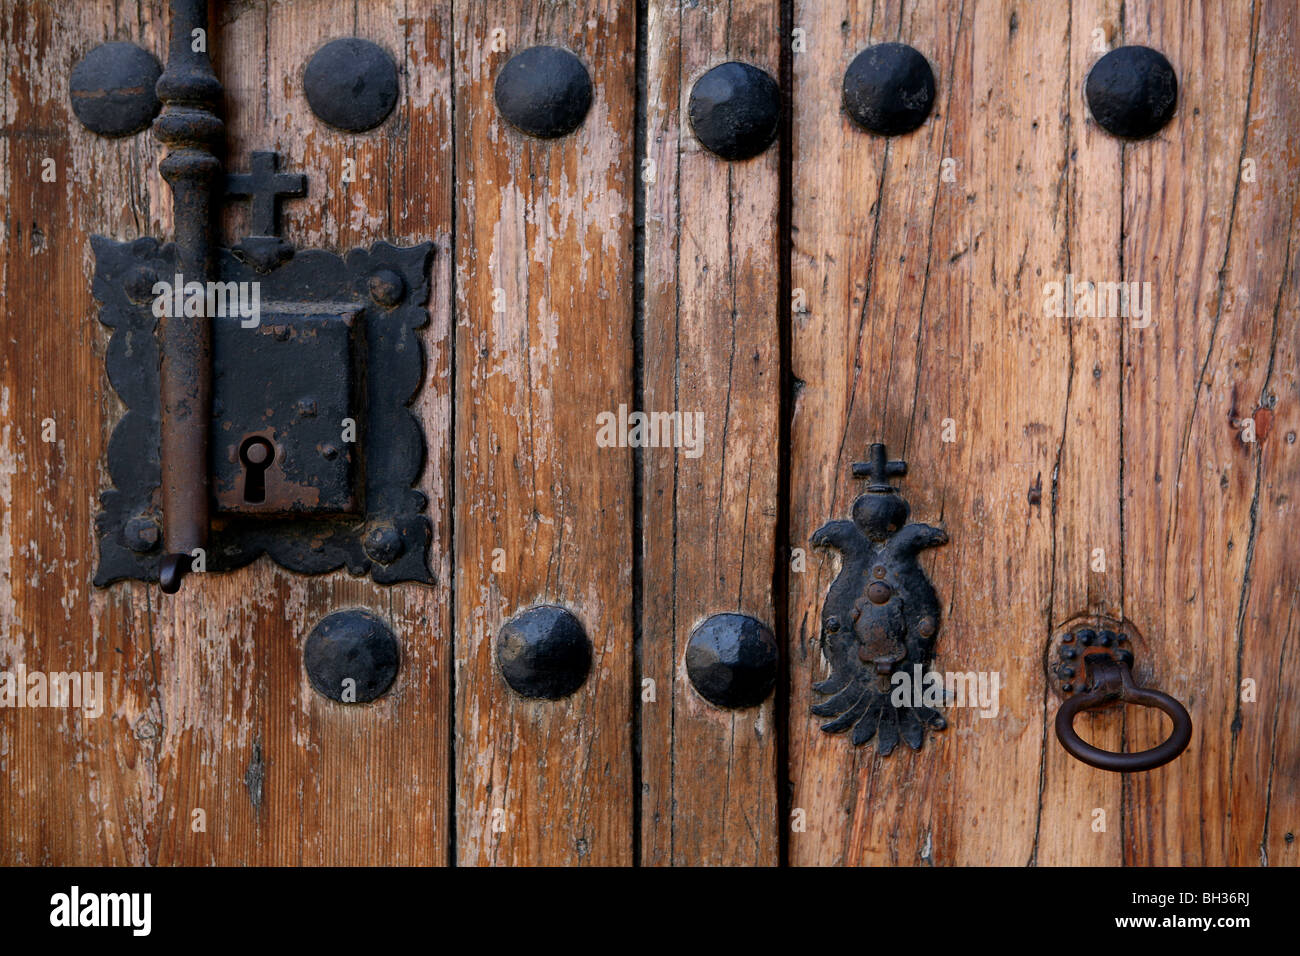 Europe, Spain, Canary Islands, Grand Canary, Las Palmas, Christopher Columbus House, particular door, lock, key - Stock Image